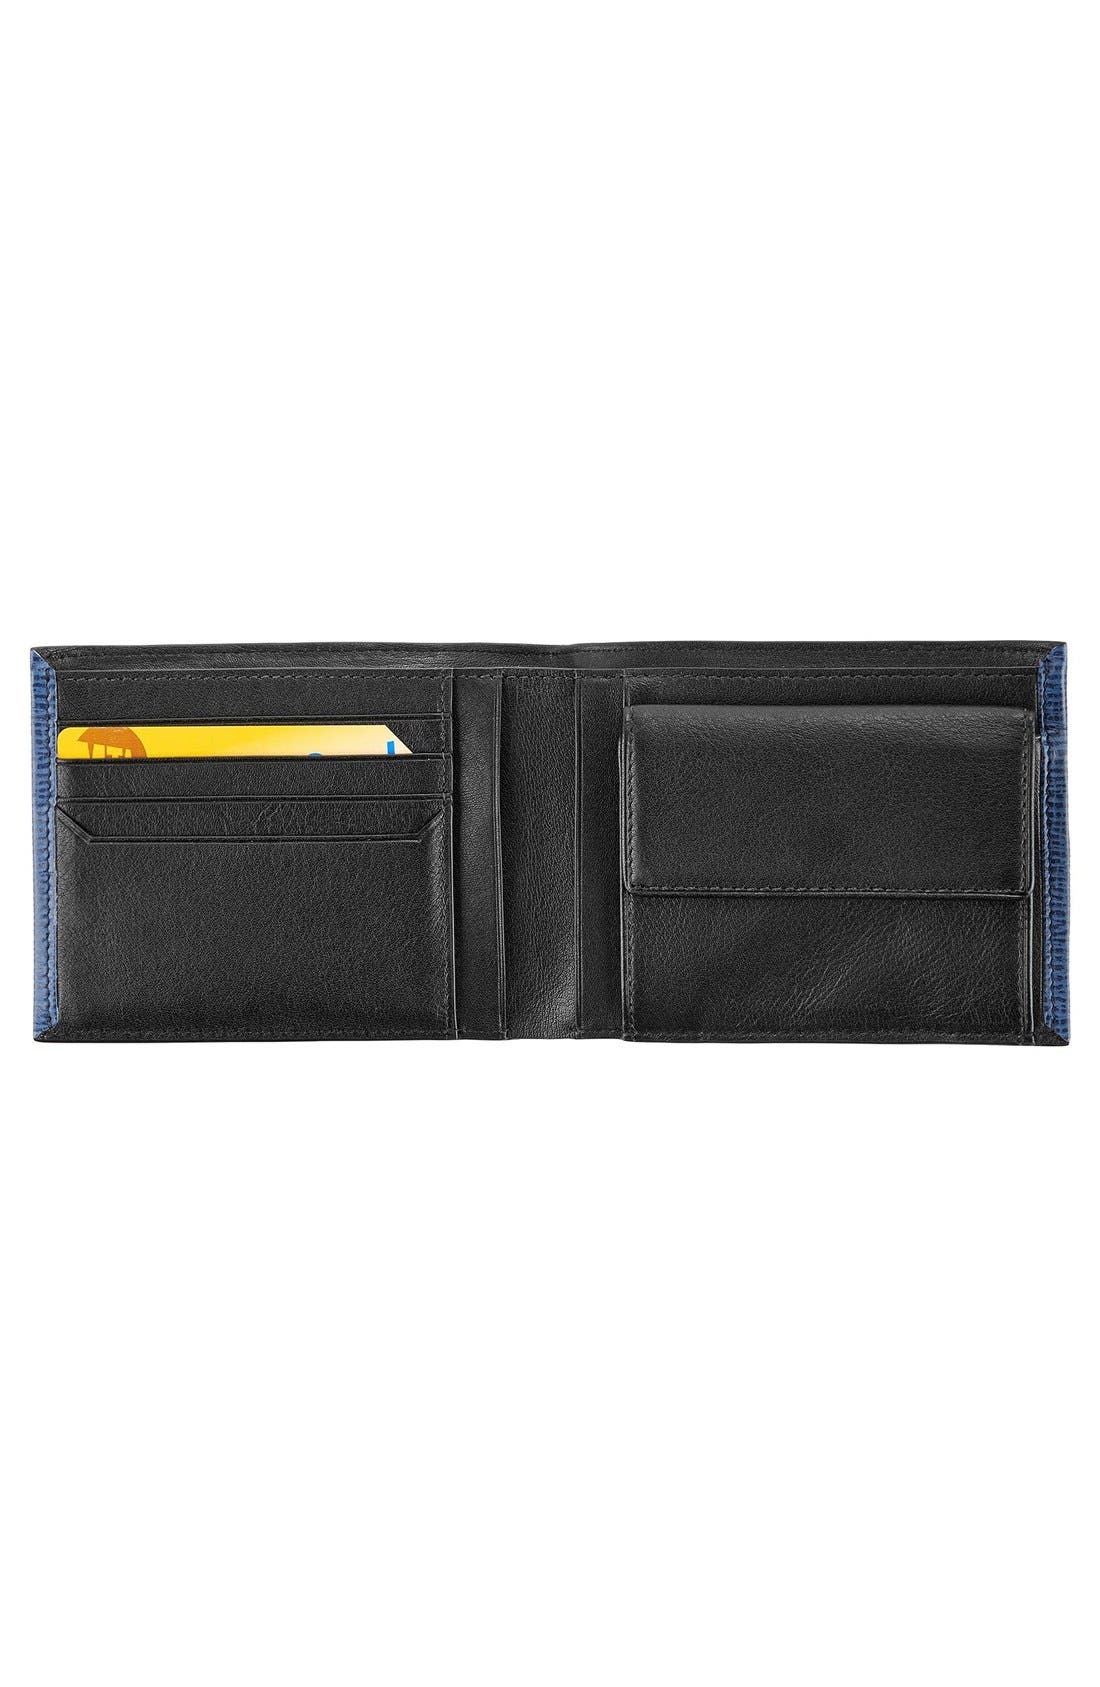 Monaco Global Leather Wallet with Coin Pocket,                             Alternate thumbnail 2, color,                             Cobalt